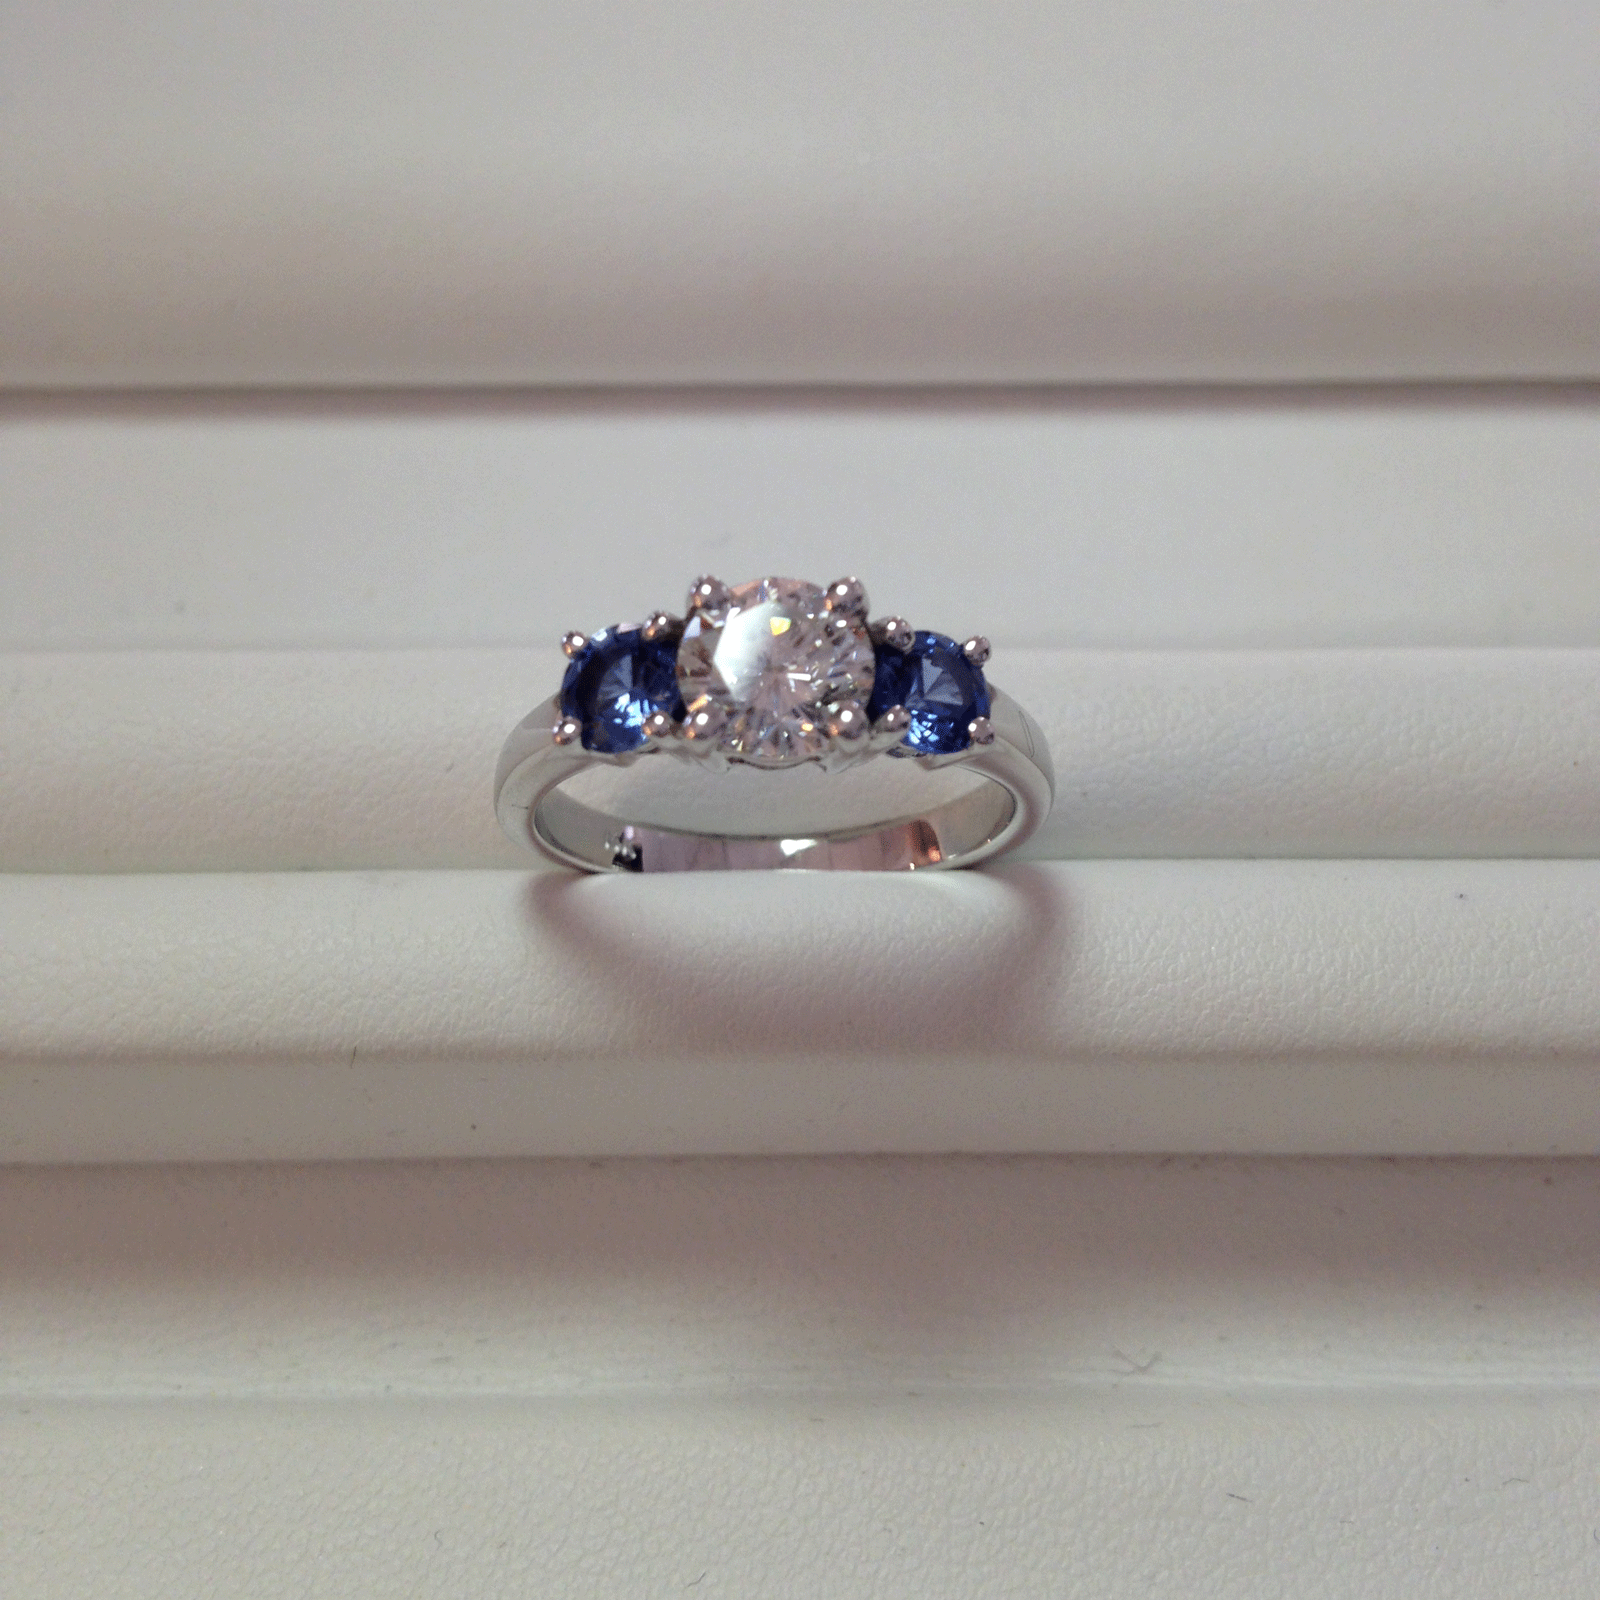 baguettes ring baquettes engagement cz bling rh blue jewelry zirconia silver cubic sapphire cut gray color princess